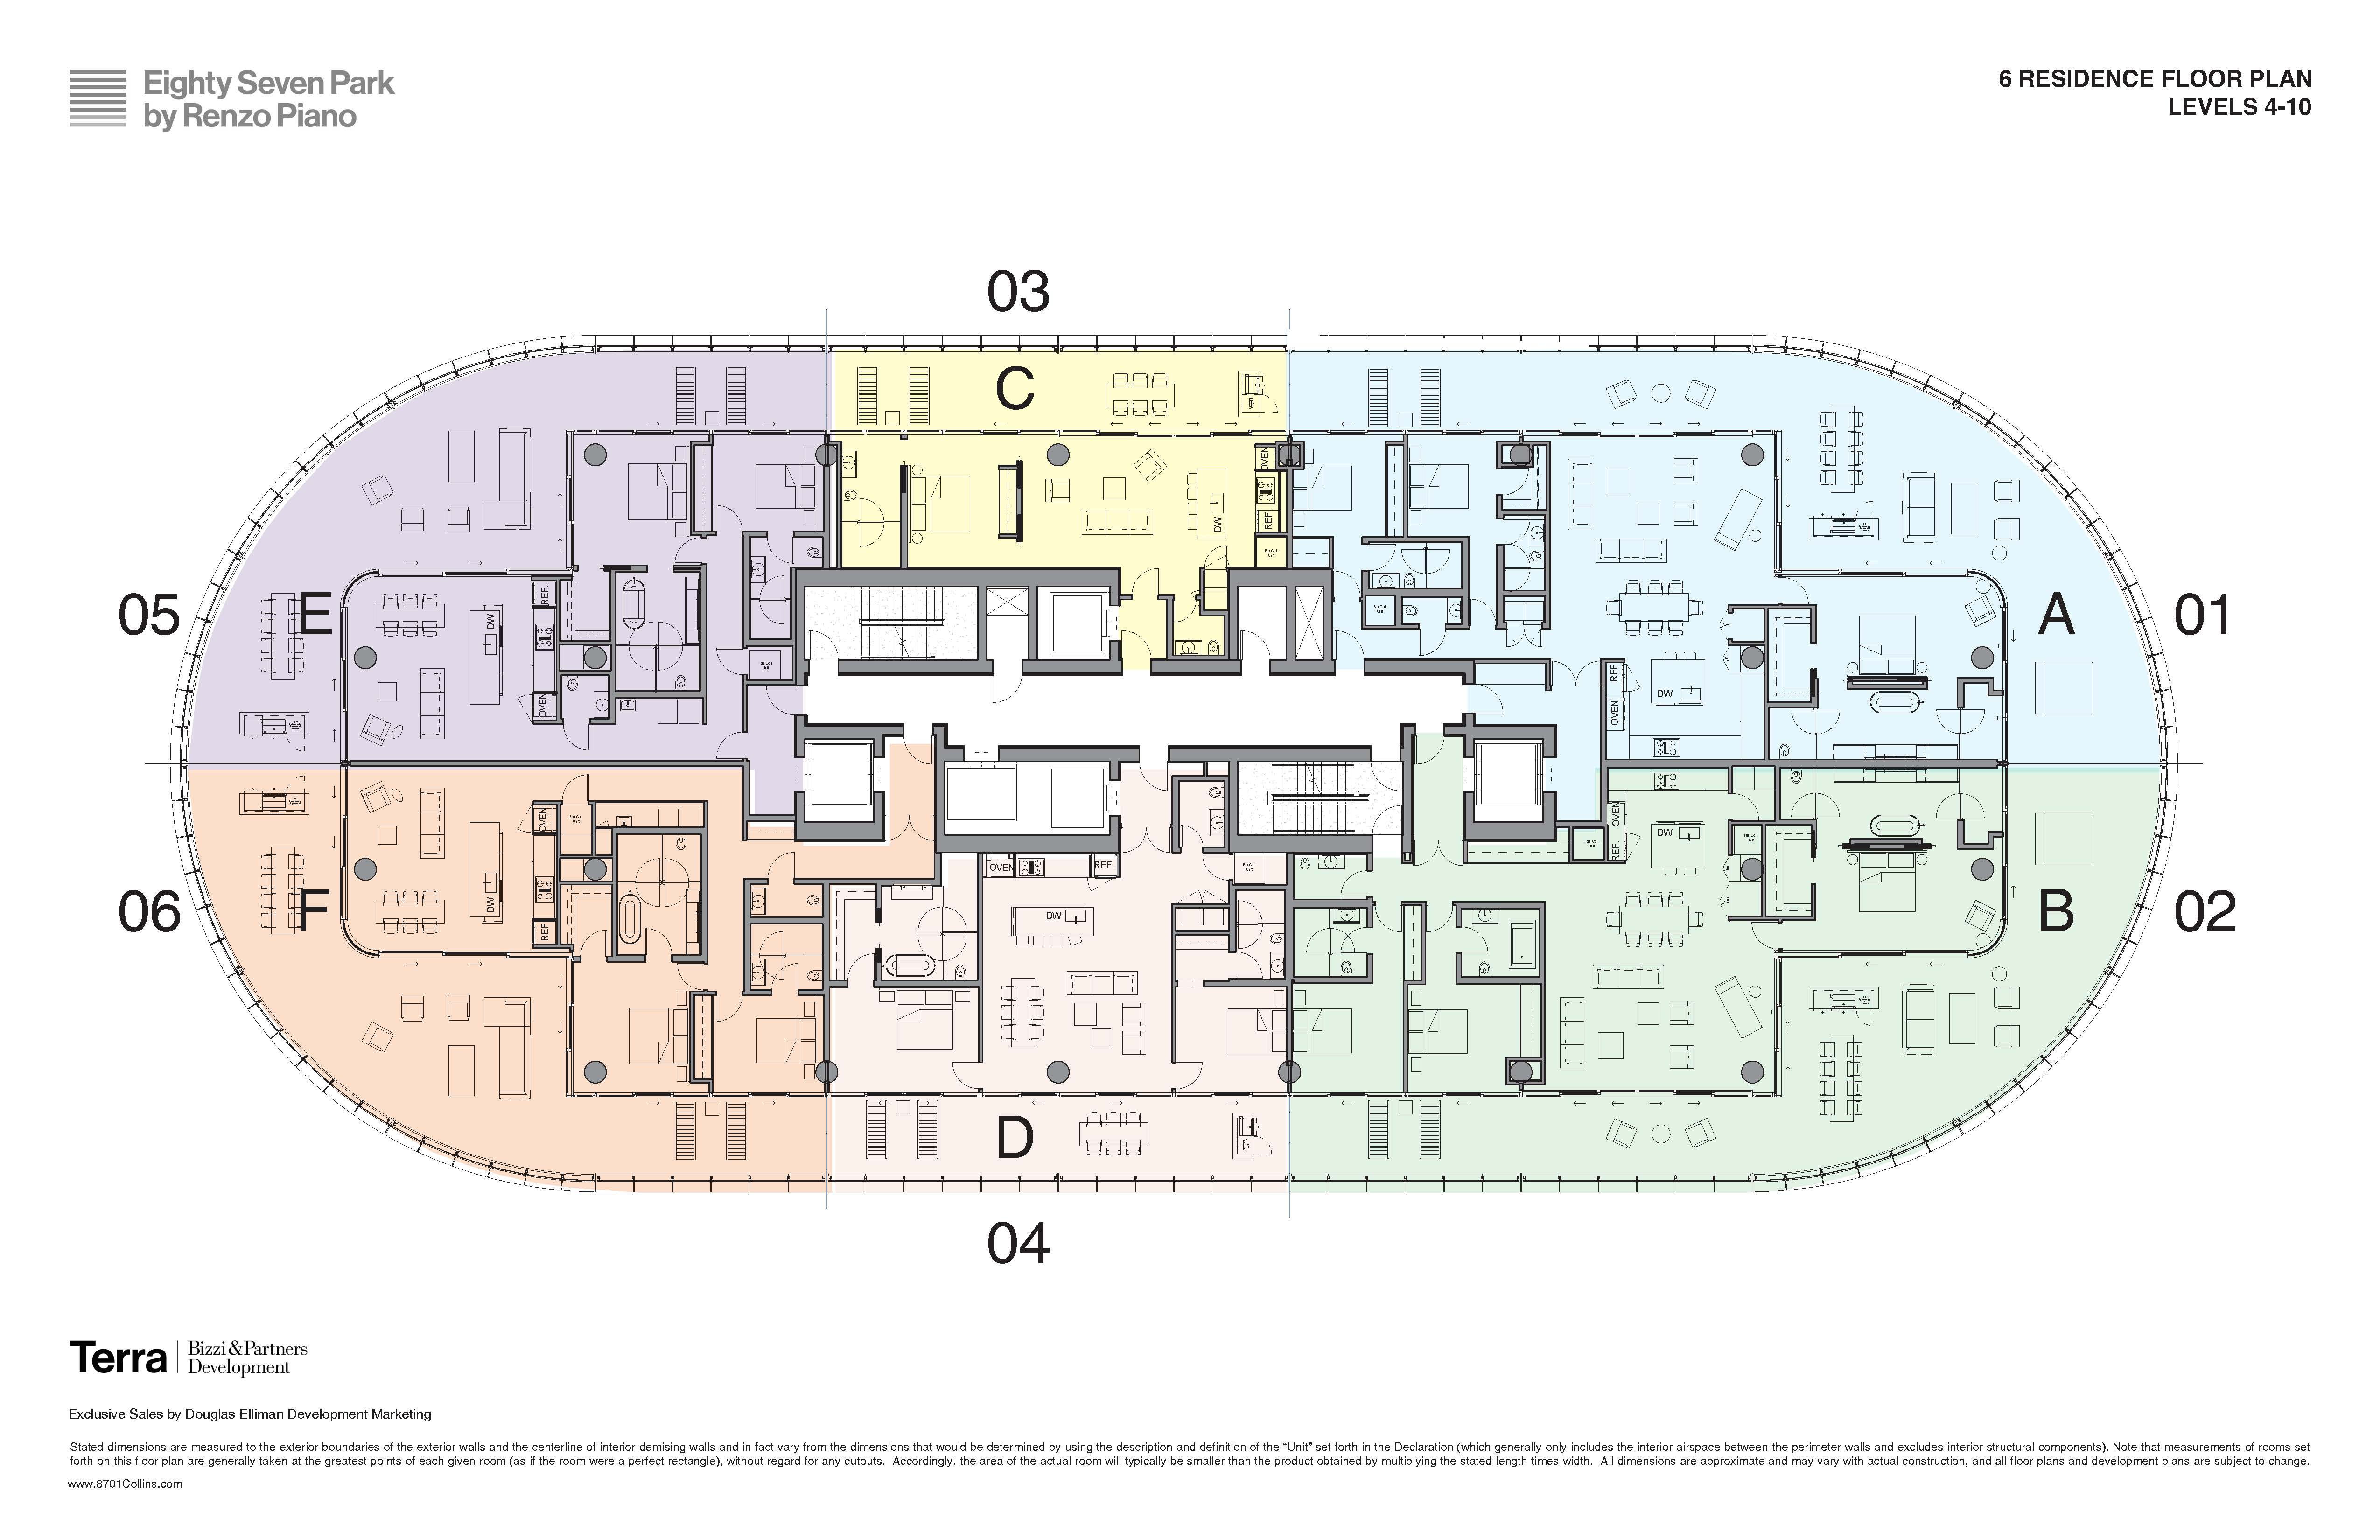 Floorplans 1 - Site Plan Floors 4-10